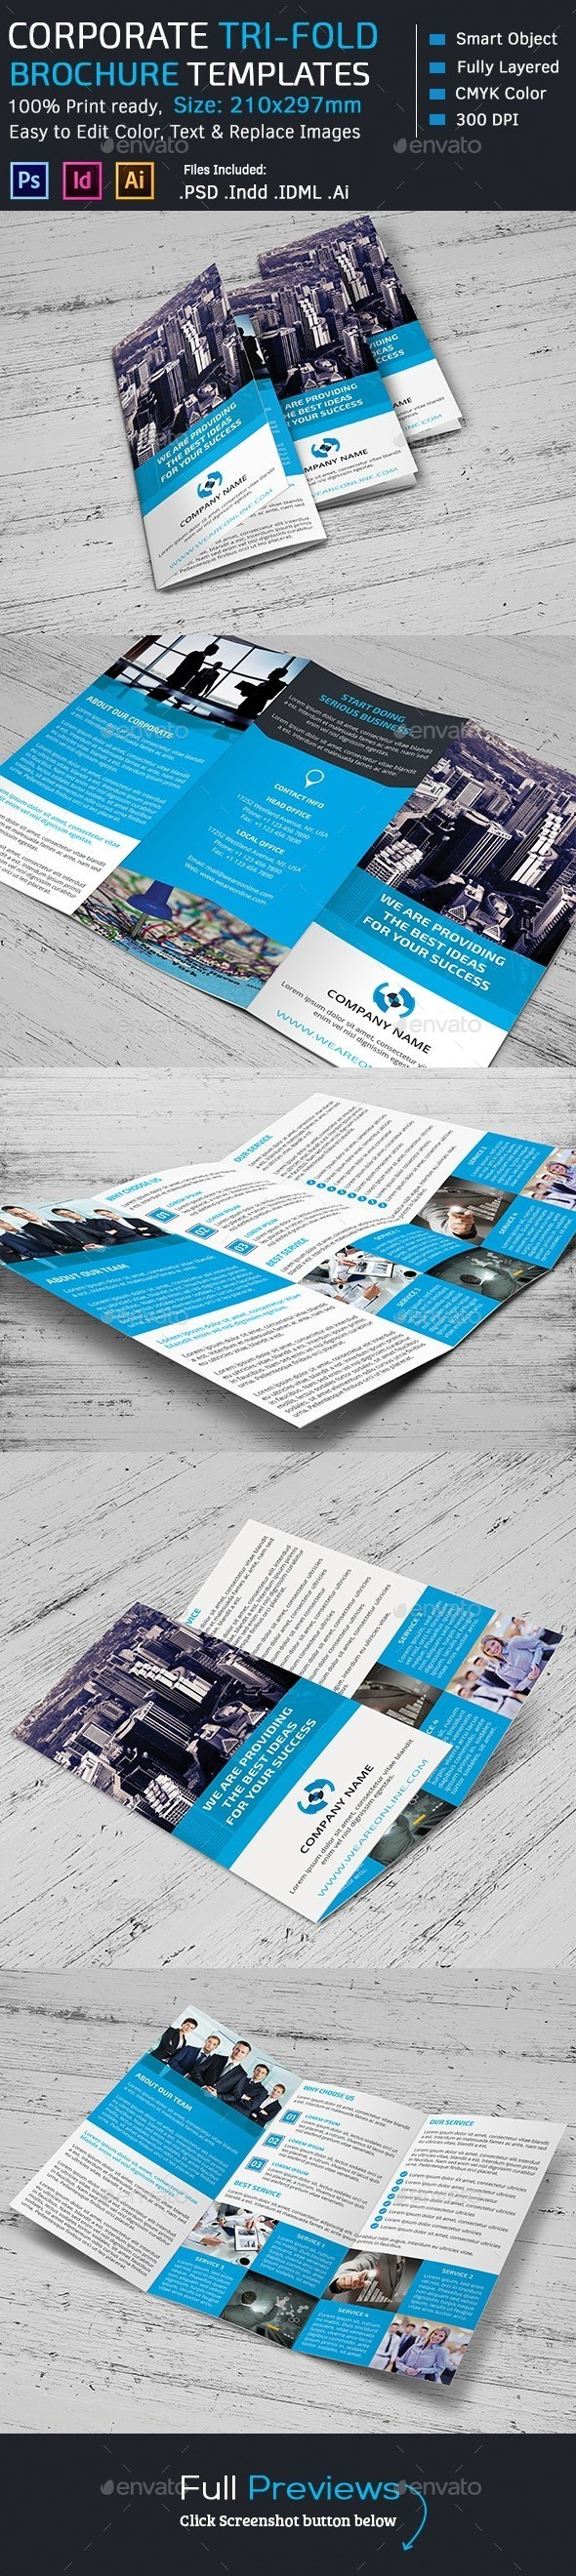 GraphicRiver Corporate Marketing Tri-Fold Brochure 10969895